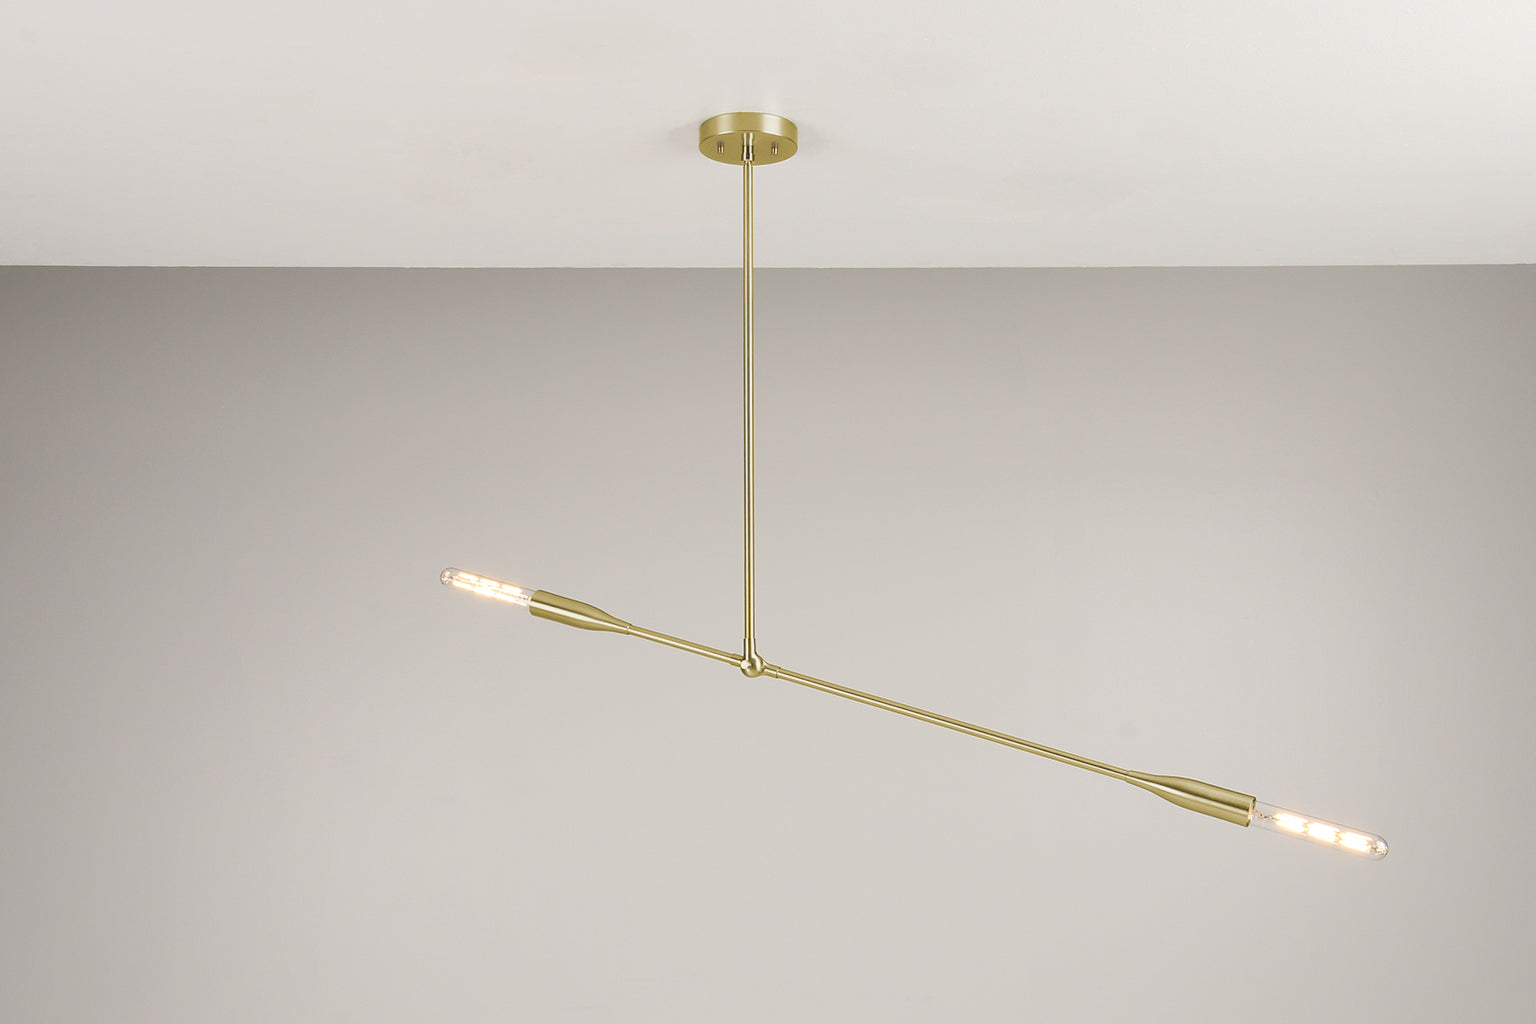 Mid-Century inspired Sorenthia Light fixture in Brushed Brass with linear bulbs by Studio DUNN with a grey wall background